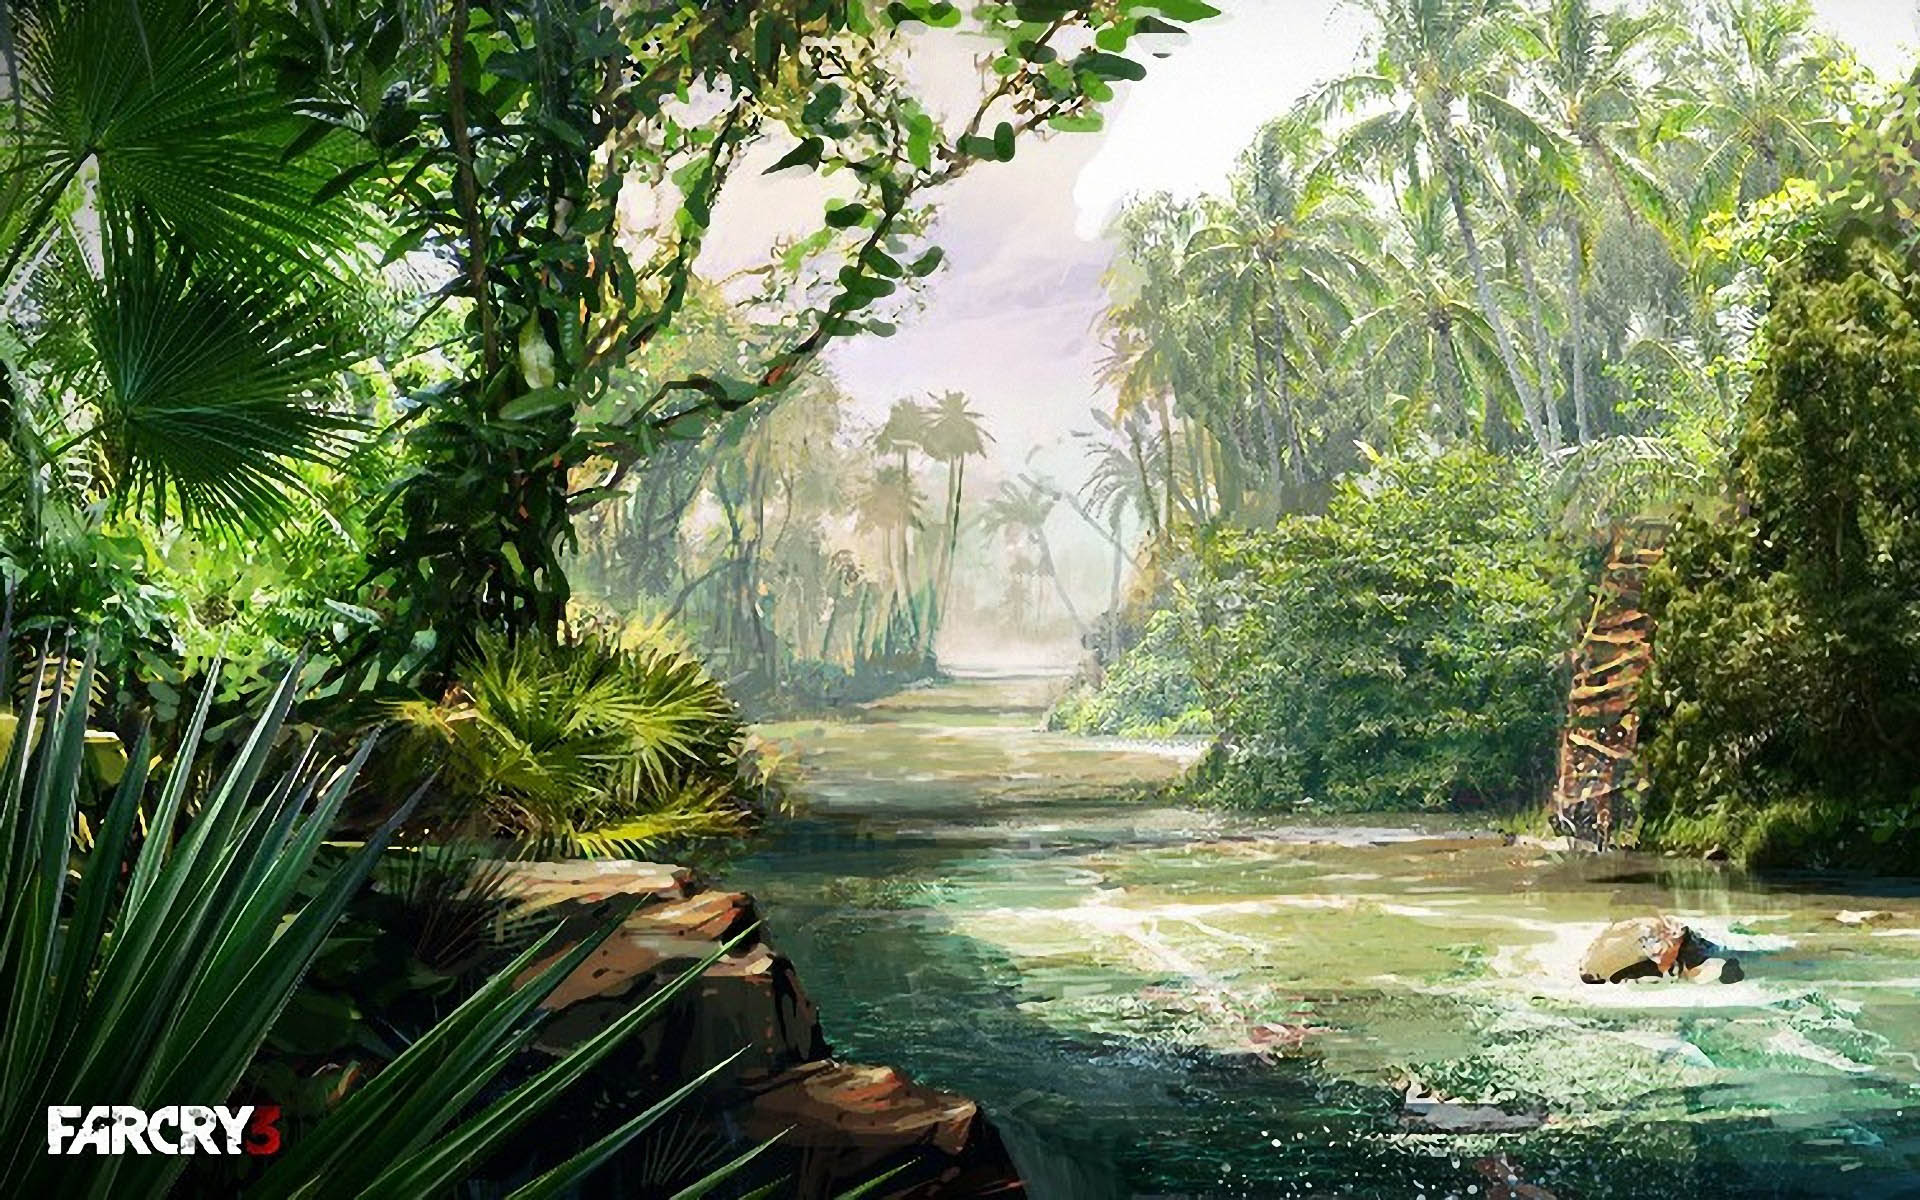 Far Cry 3 Hd Hd Wallpaper